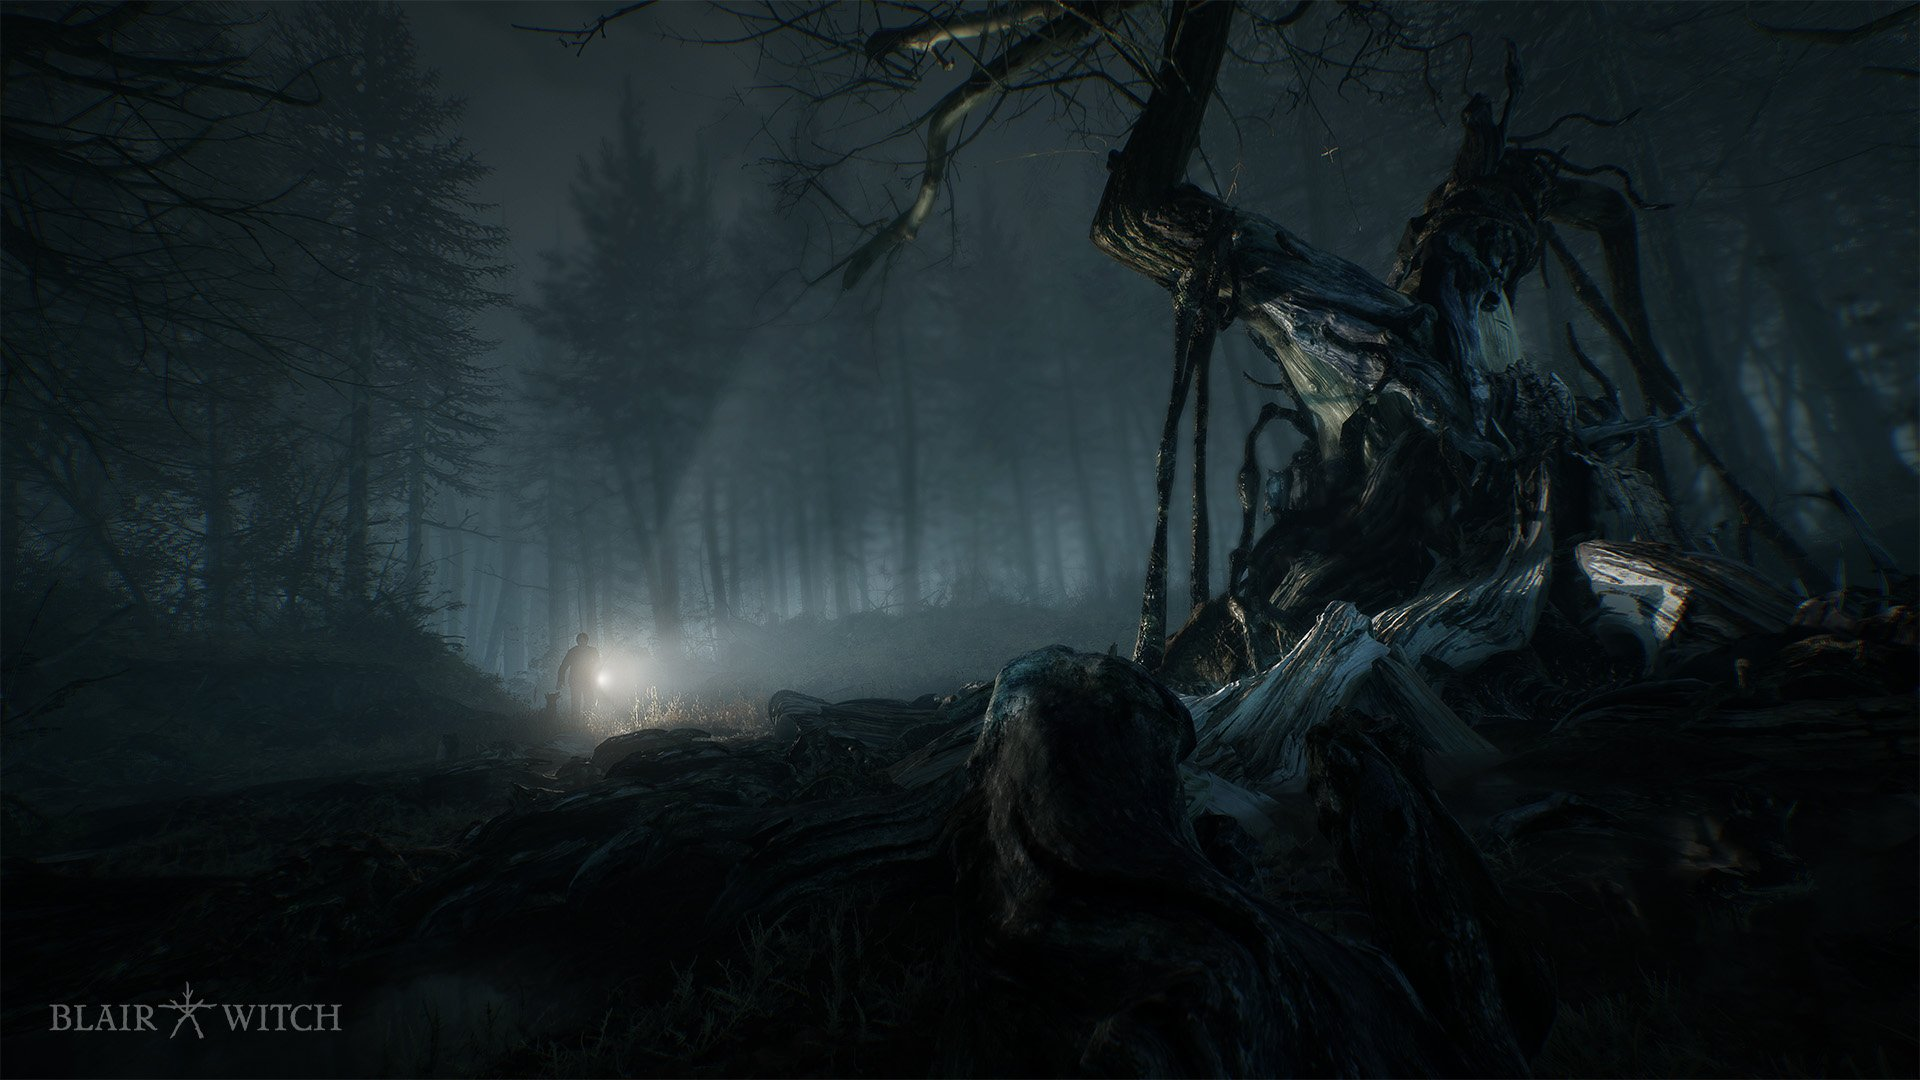 Blair Witch Game Release Date